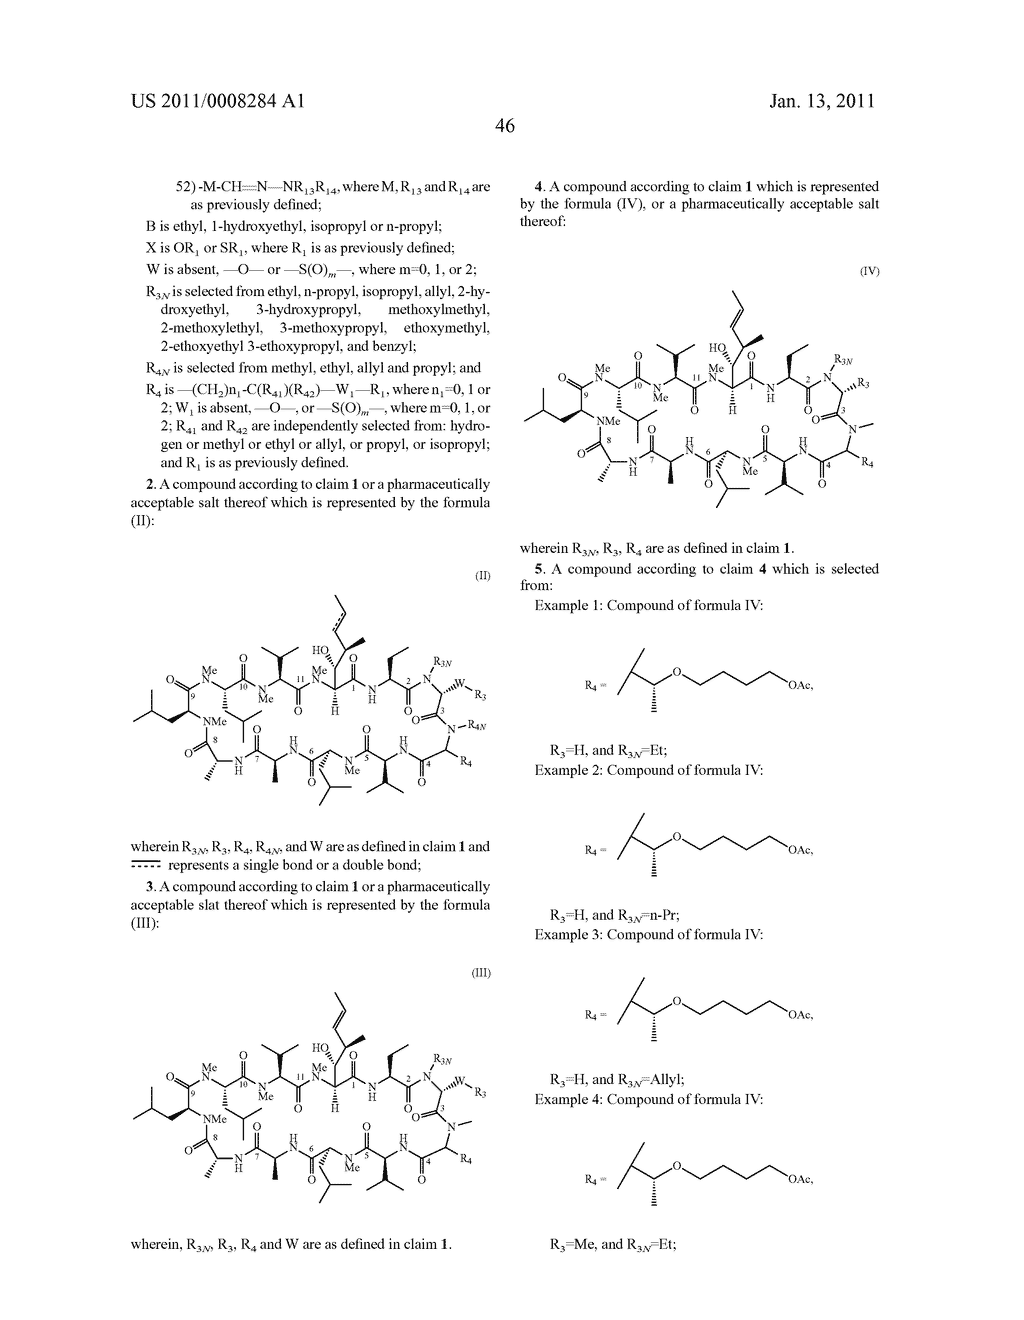 NOVEL CLYCLOSPORIN ANALOGUES - diagram, schematic, and image 47